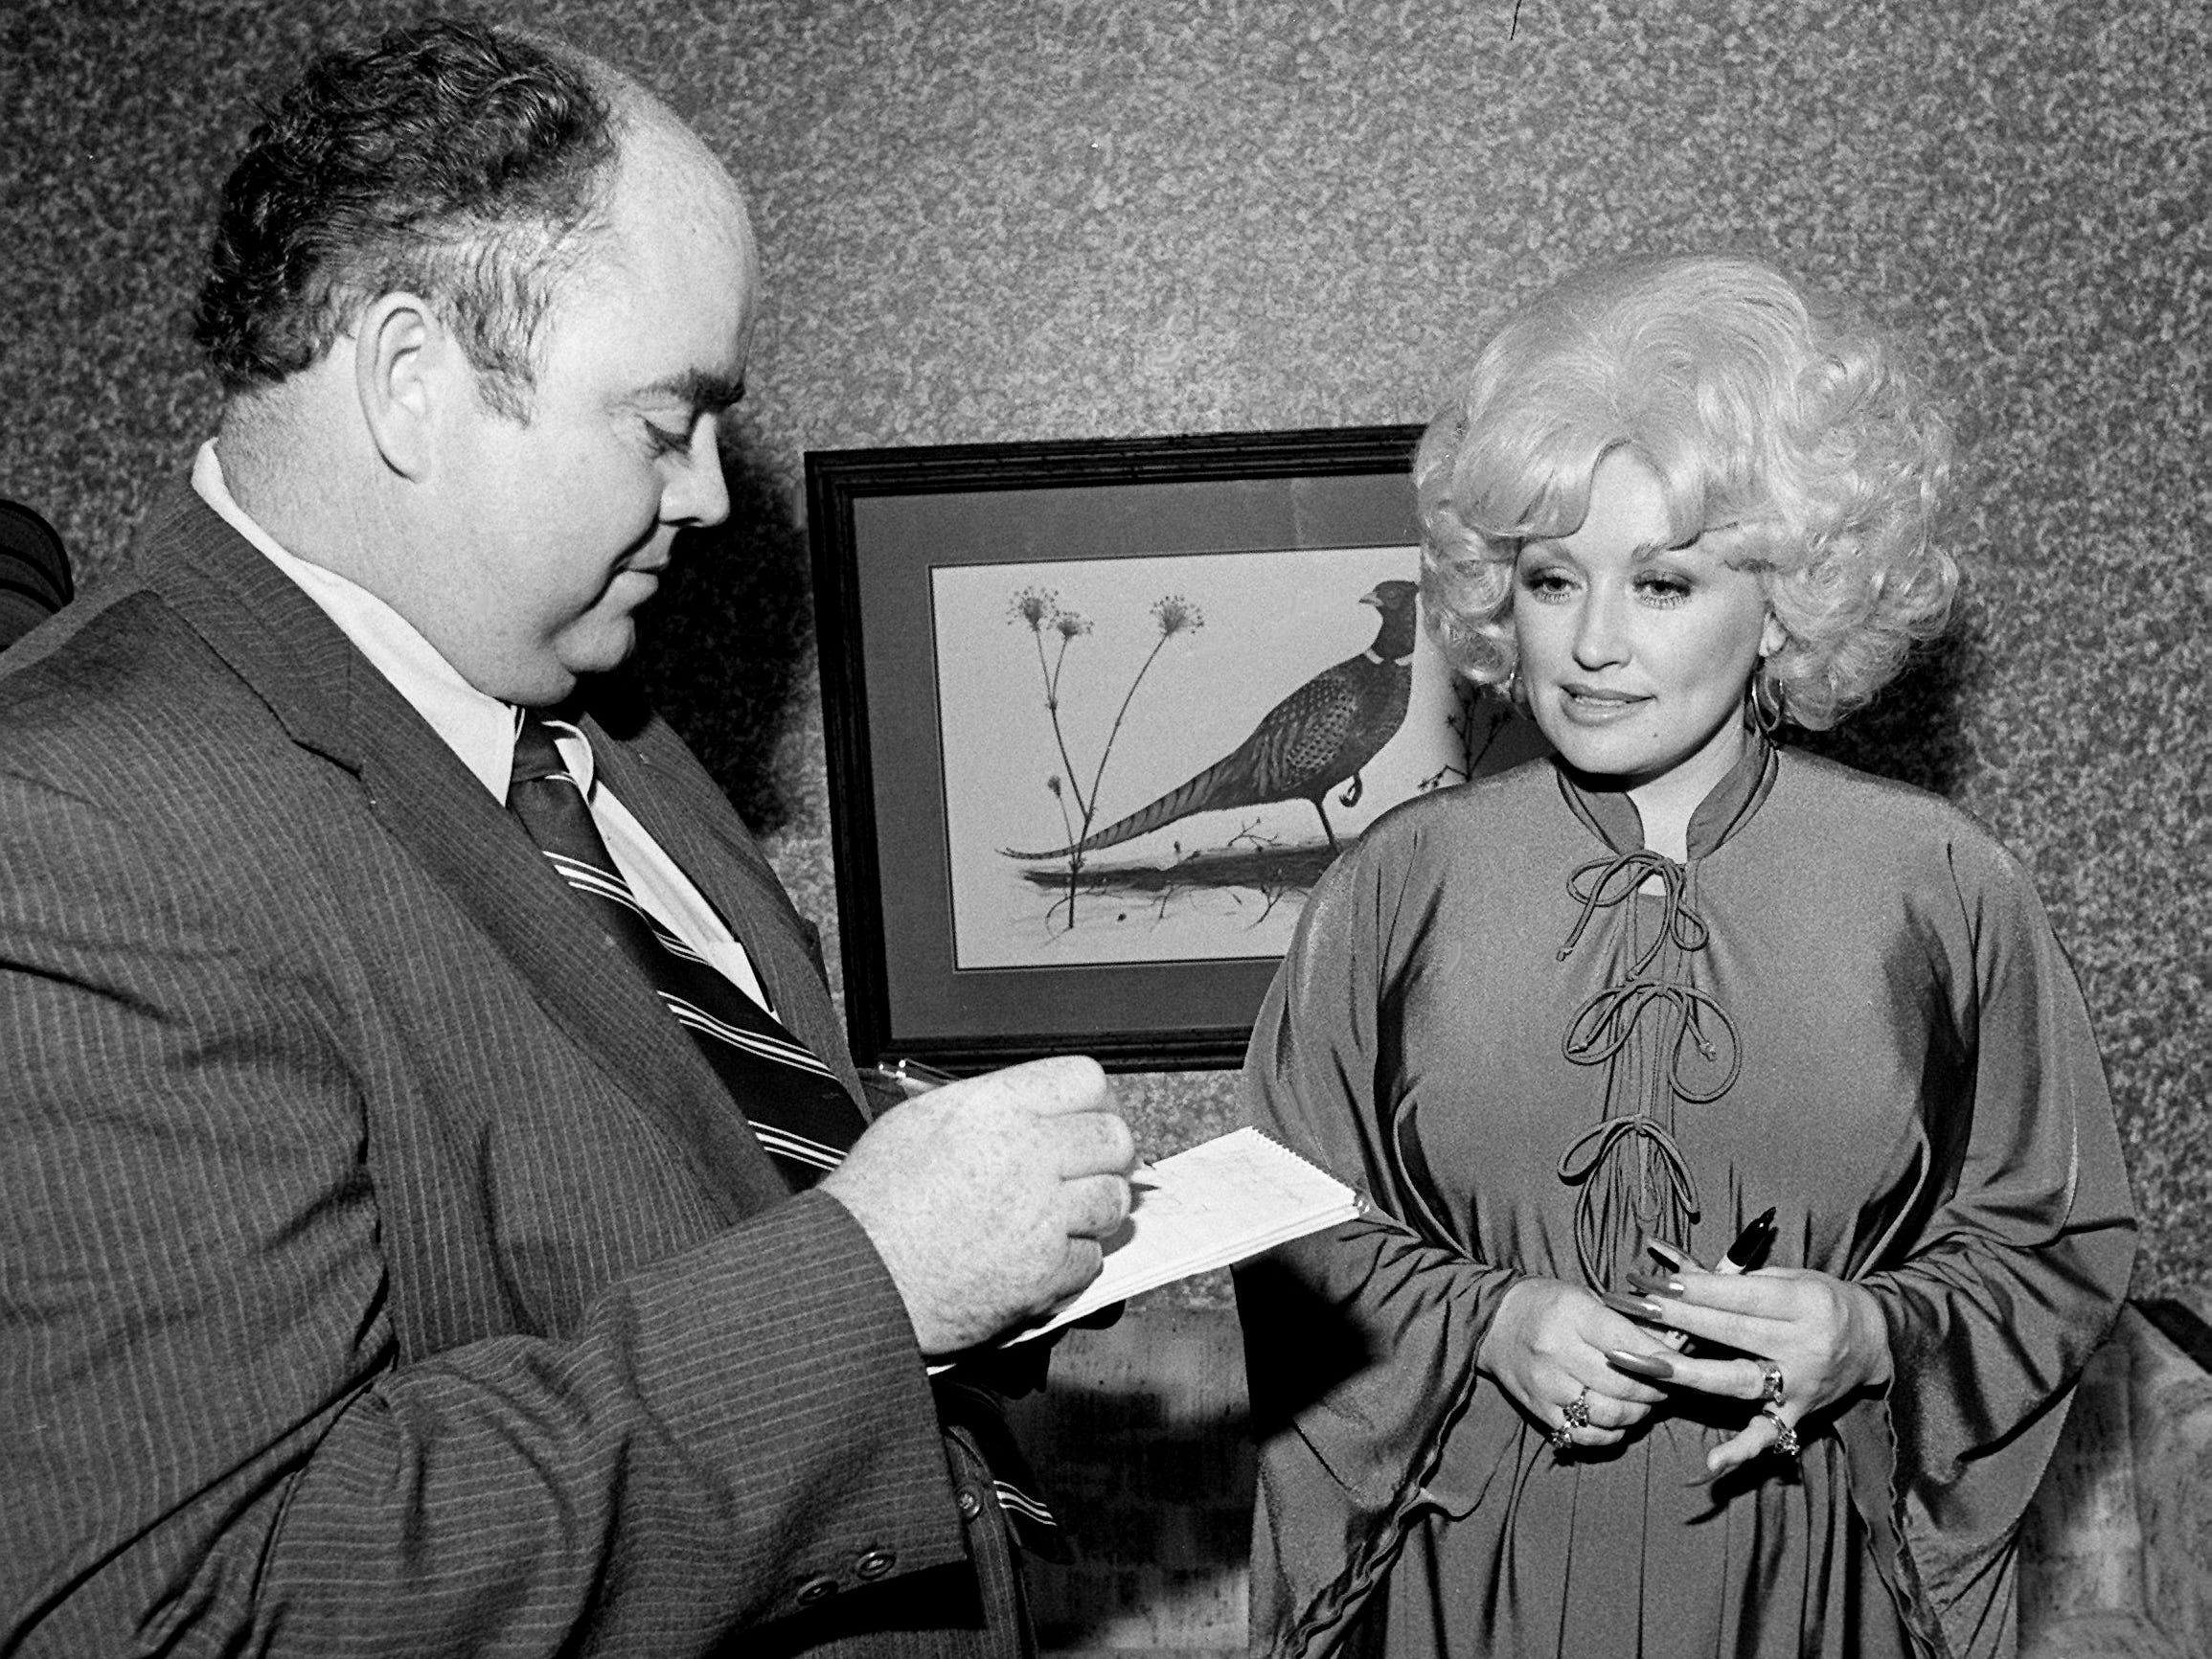 Dolly Parton gets interviewed by  Tennessean reporter Jerry Thompson as she visits the Dollar General headquarters in Scottsville, Ky., on May 1, 1979. Parton was fulfilling a date when she offered her appearance for auction on WDCN's annual Action Auction to support the educational television station.